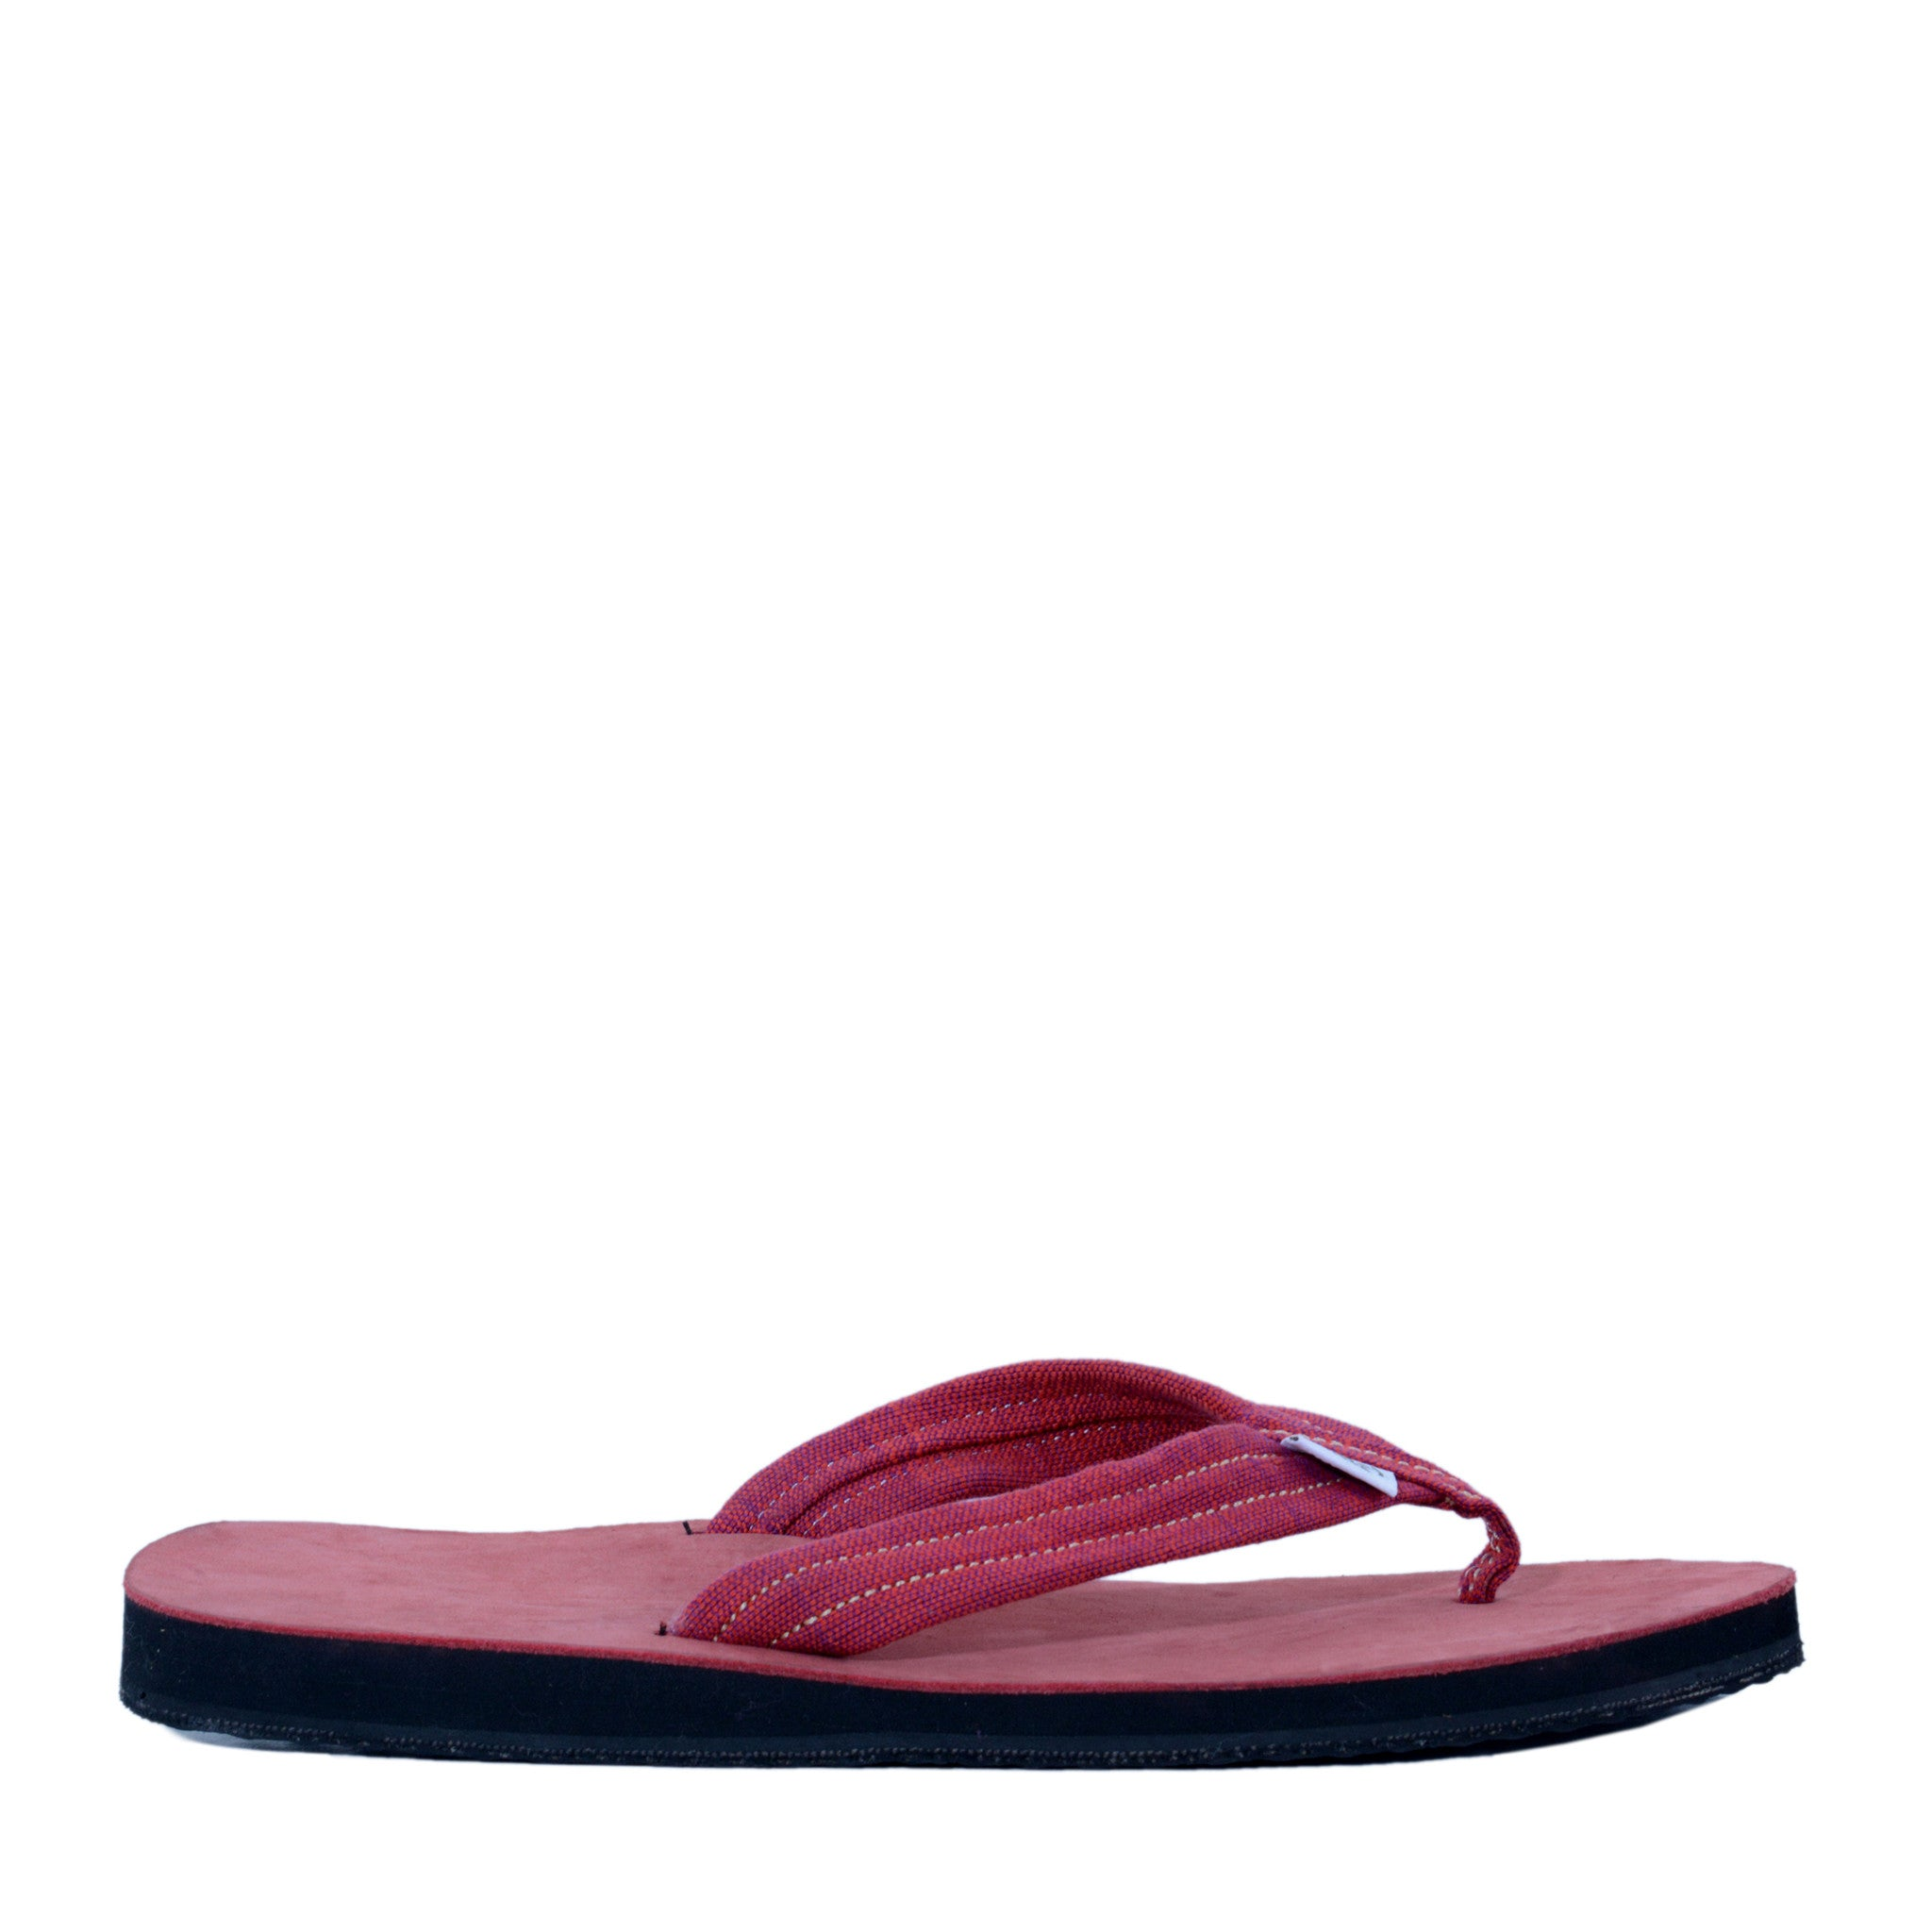 solerebels red nuDEAL mSh 2 Sandals